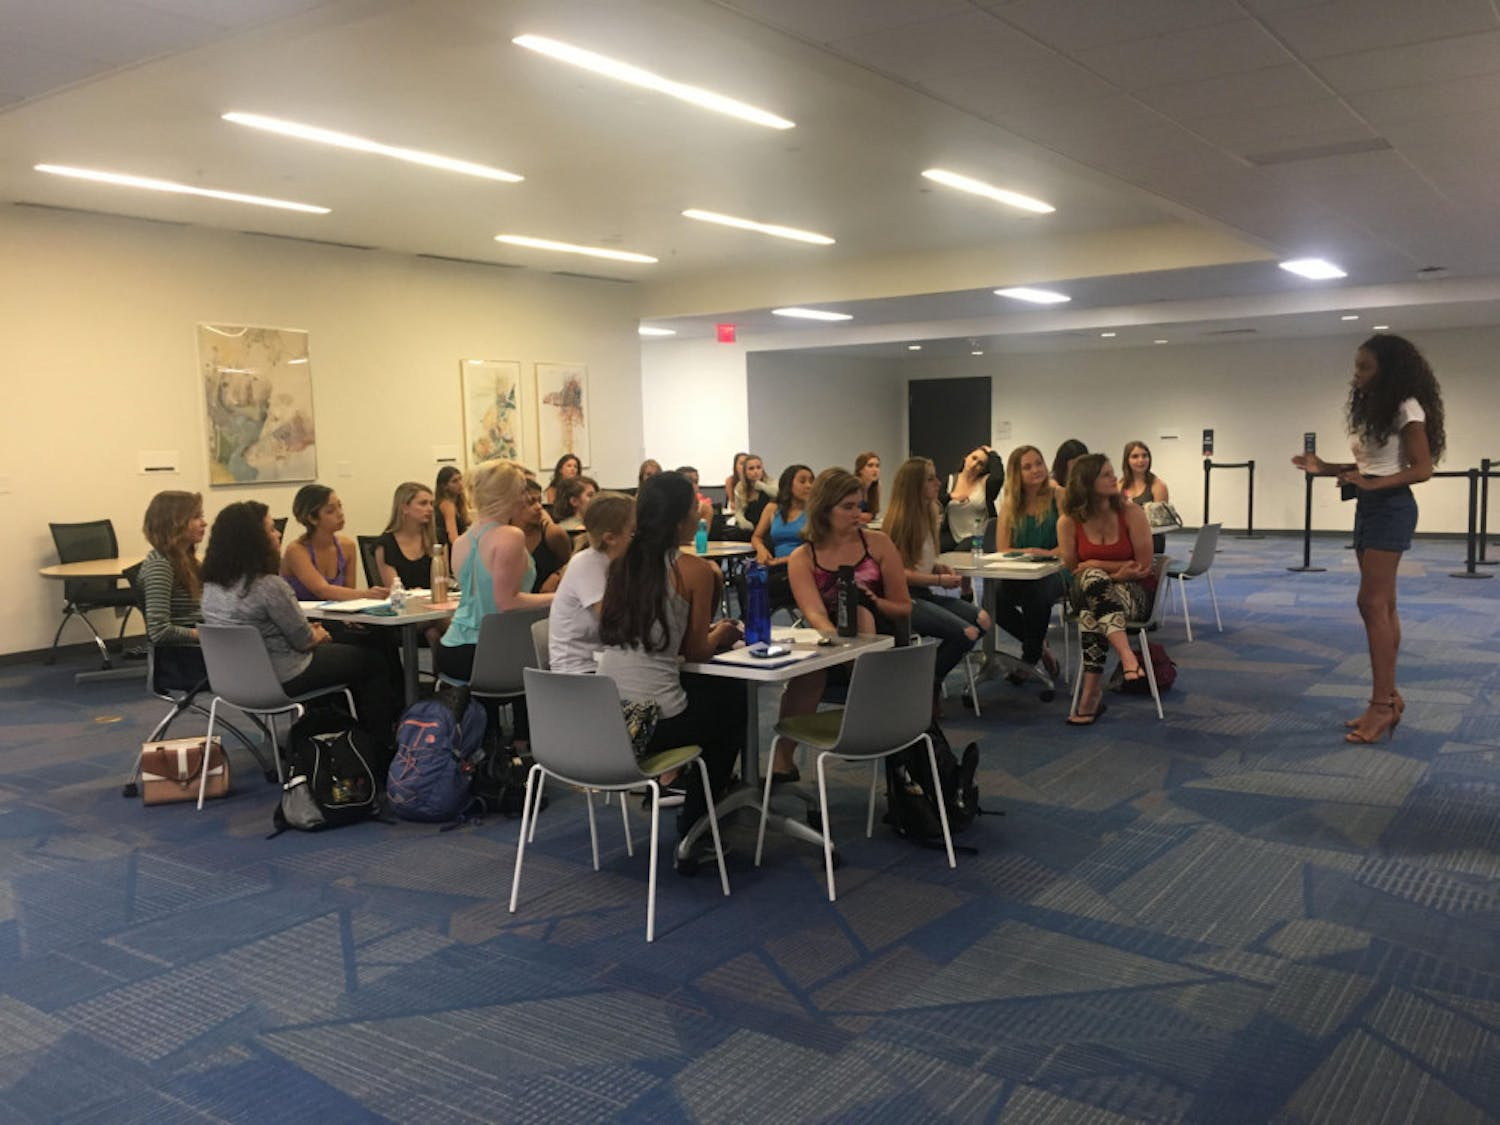 About 30 women in full makeup showed up at the Reitz Union on Sunday to audition for a princess role. Judges looked for attitude, stage presence and confidence.